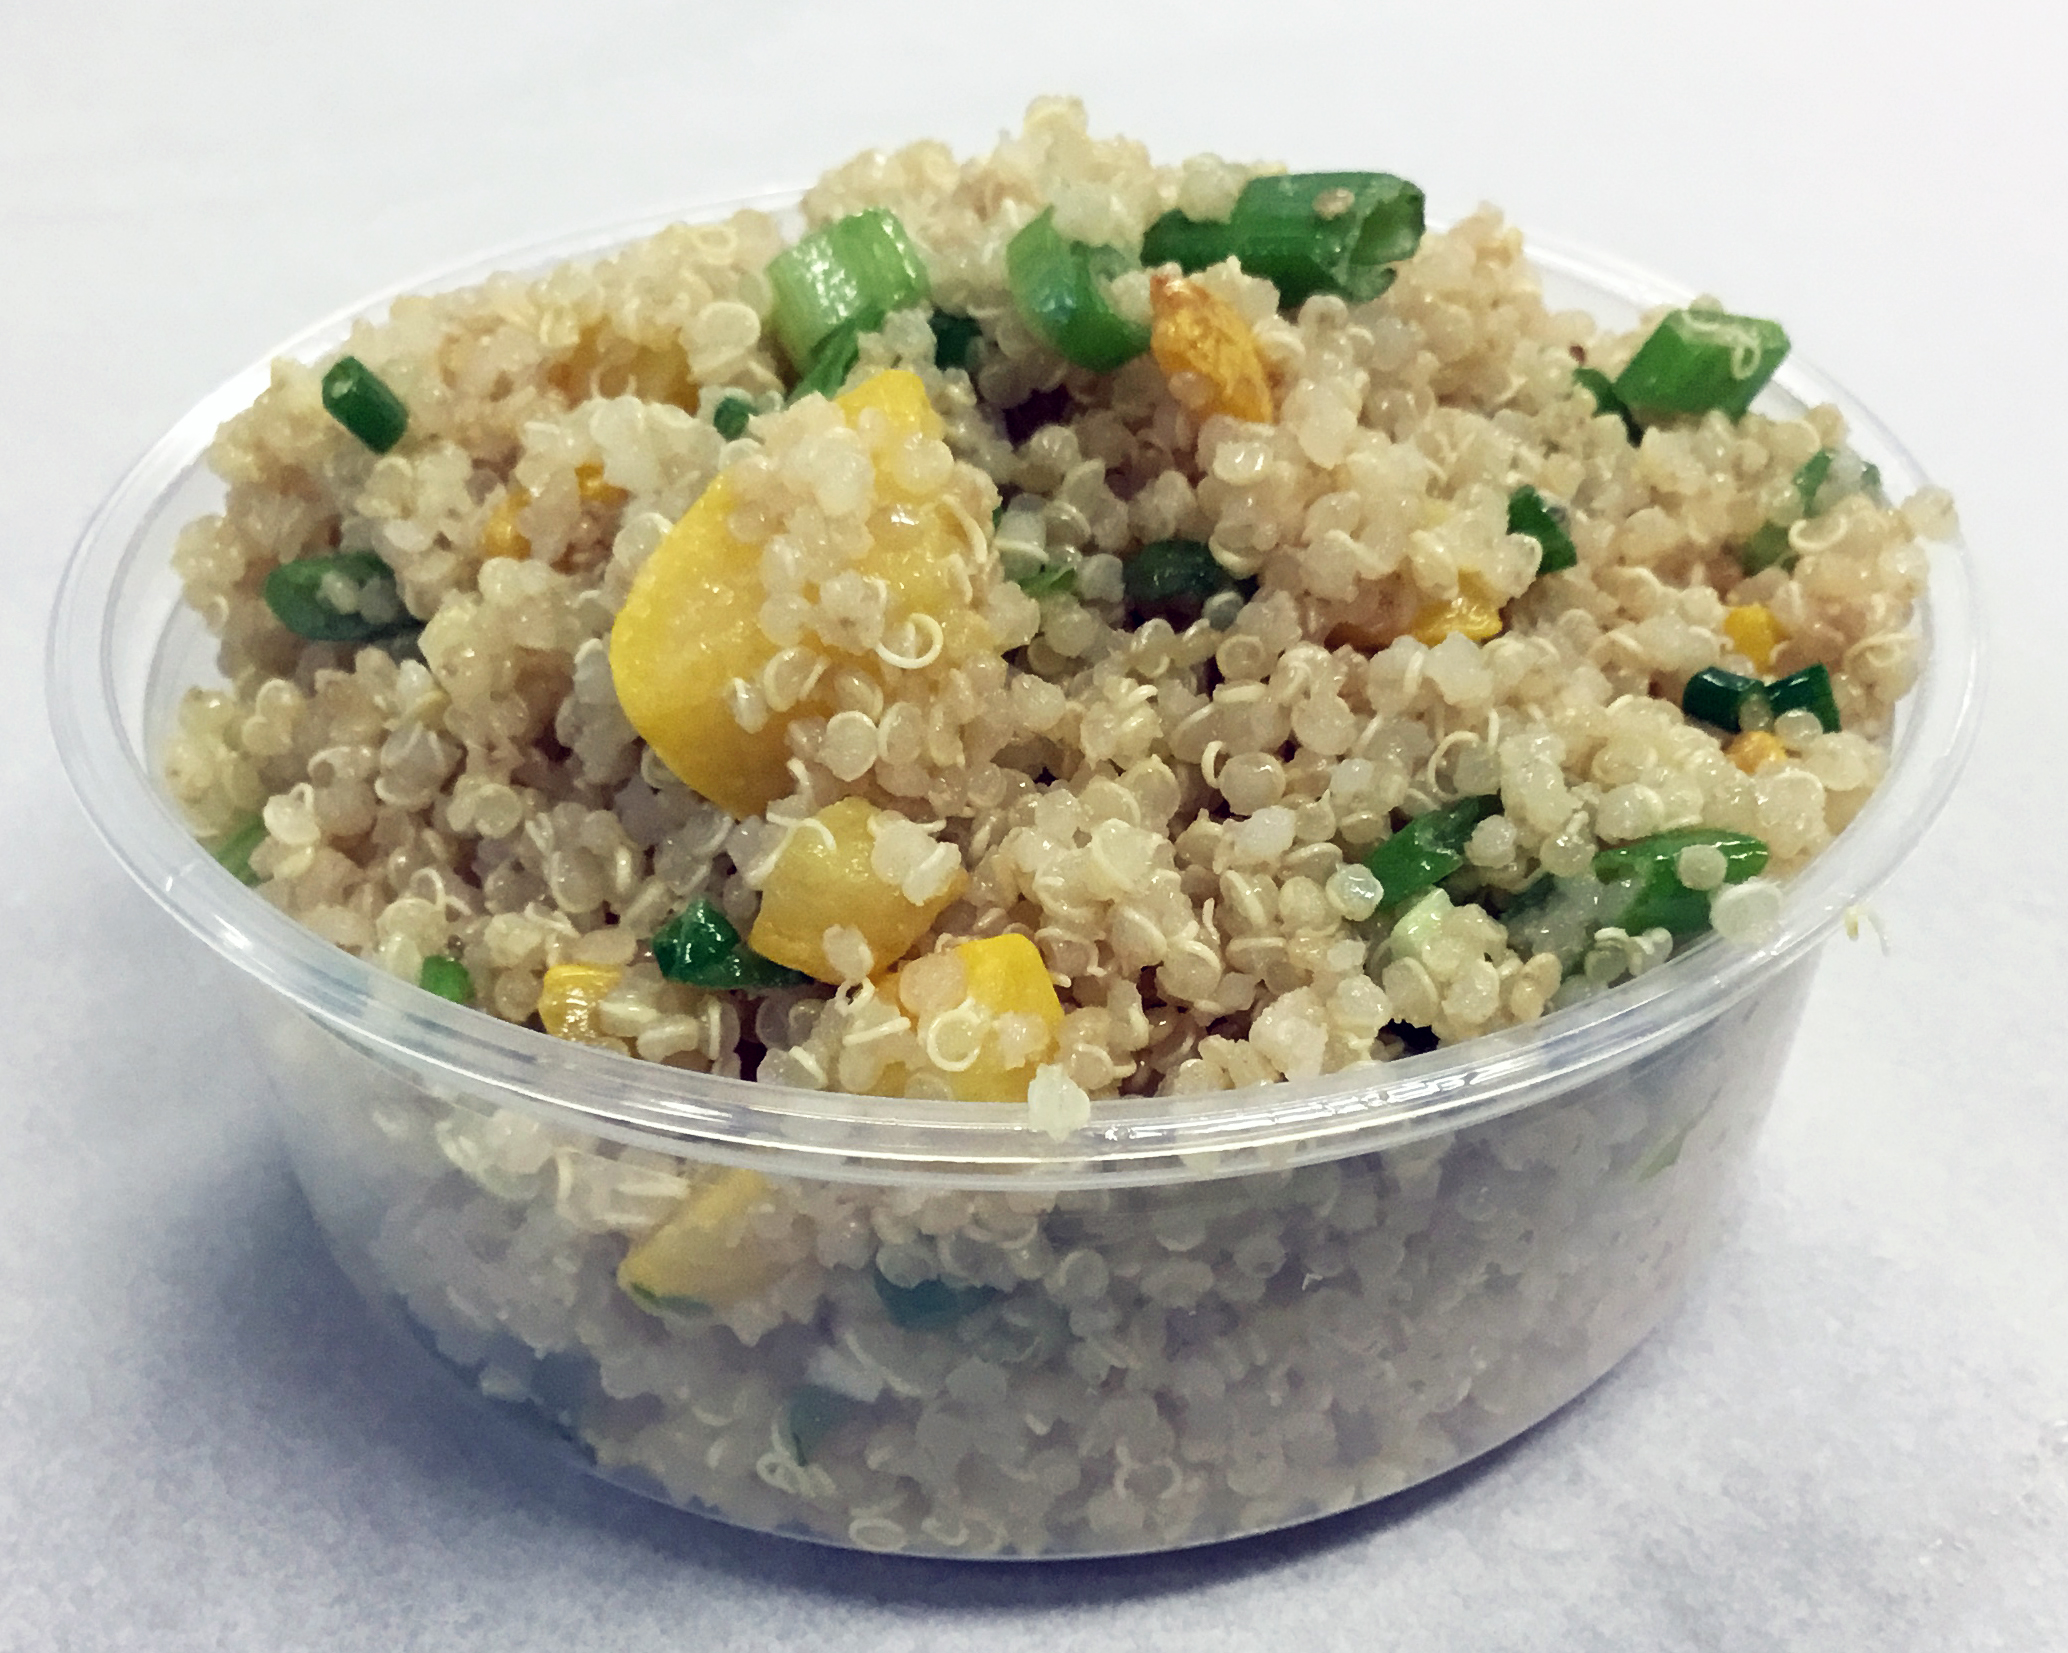 Quinoa with sauteed yellow squash, scallions and a mustard dressing.